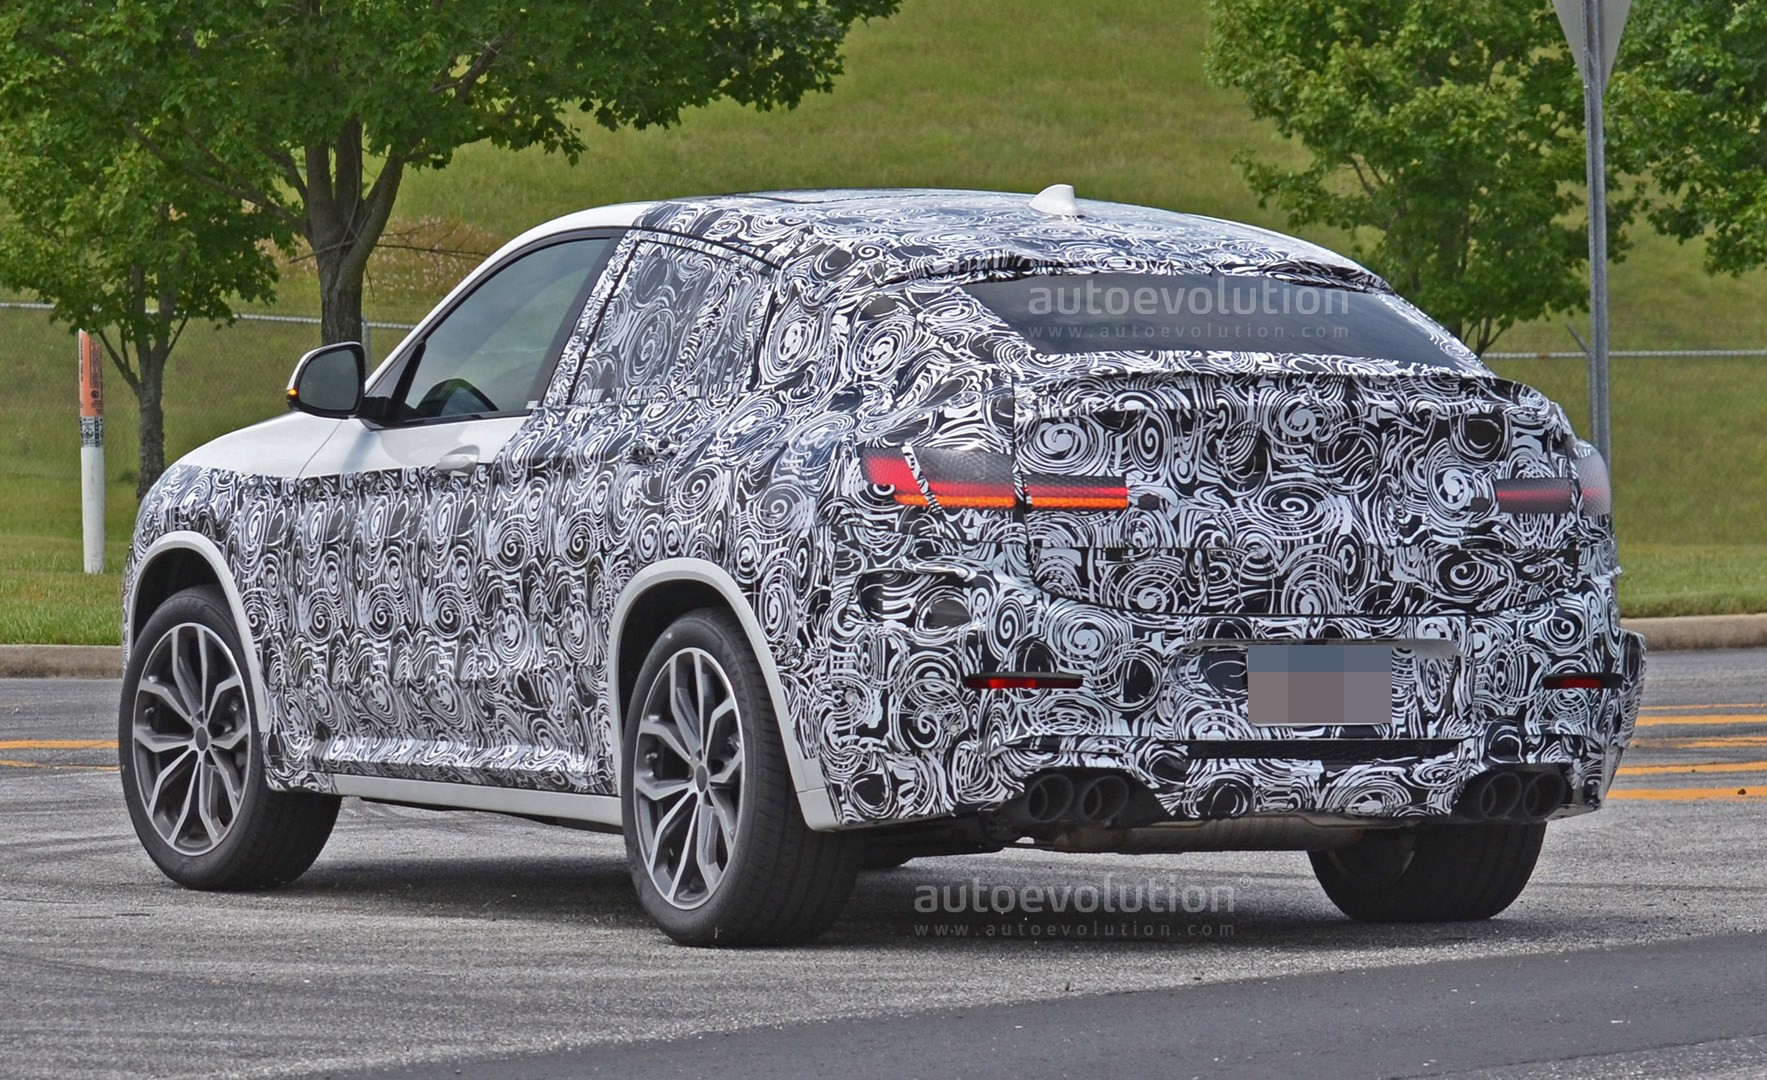 2019 Bmw X3 M >> Spyshots: 2019 BMW X4 M Matches S58 Engine With Quad Exhaust - autoevolution